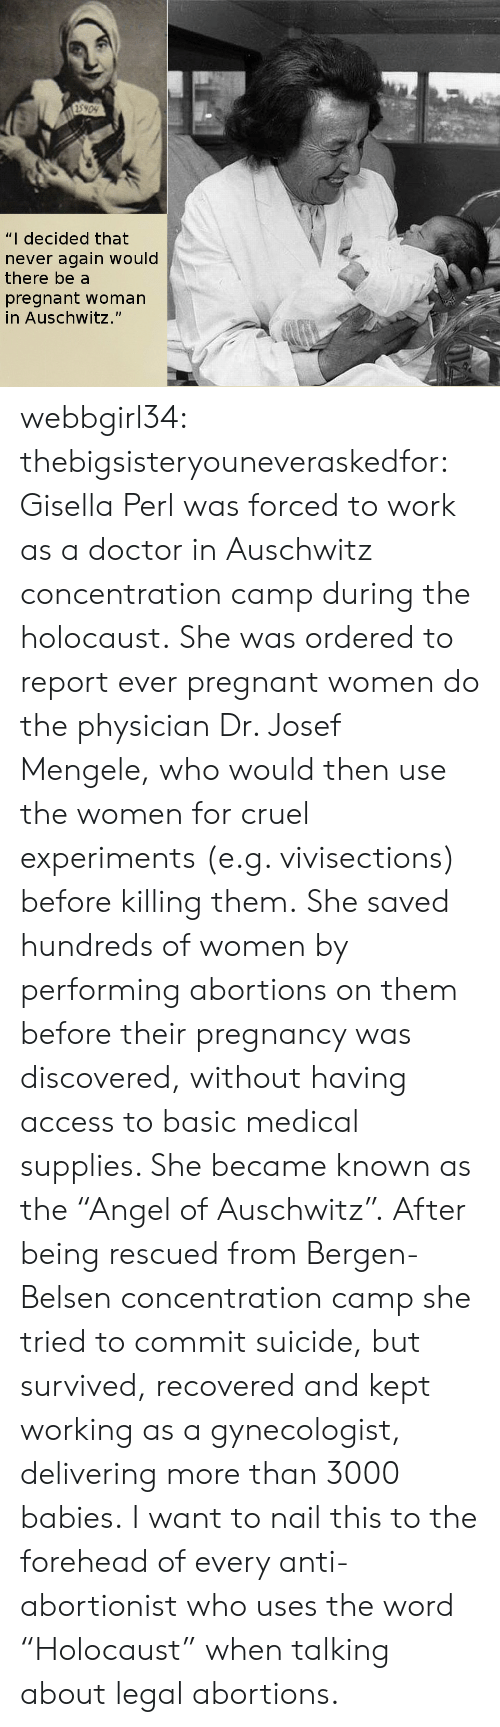 """Josef Mengele: 5909  """"I decided that  never again would  there be a  pregnant woman  in Auschwitz."""" webbgirl34:  thebigsisteryouneveraskedfor:  Gisella Perl was forced to work as a doctor in Auschwitz concentration camp during the holocaust. She was ordered to report ever pregnant women do the physician Dr. Josef Mengele, who would then use the women for cruel experiments (e.g. vivisections) before killing them. She saved hundreds of women by performing abortions on them before their pregnancy was discovered, without having access to basic medical supplies. She became known as the """"Angel of Auschwitz"""". After being rescued from Bergen-Belsen concentration camp she tried to commit suicide, but survived, recovered and kept working as a gynecologist, delivering more than 3000 babies.  I want to nail this to the forehead of every anti-abortionist who uses the word """"Holocaust"""" when talking about legal abortions."""